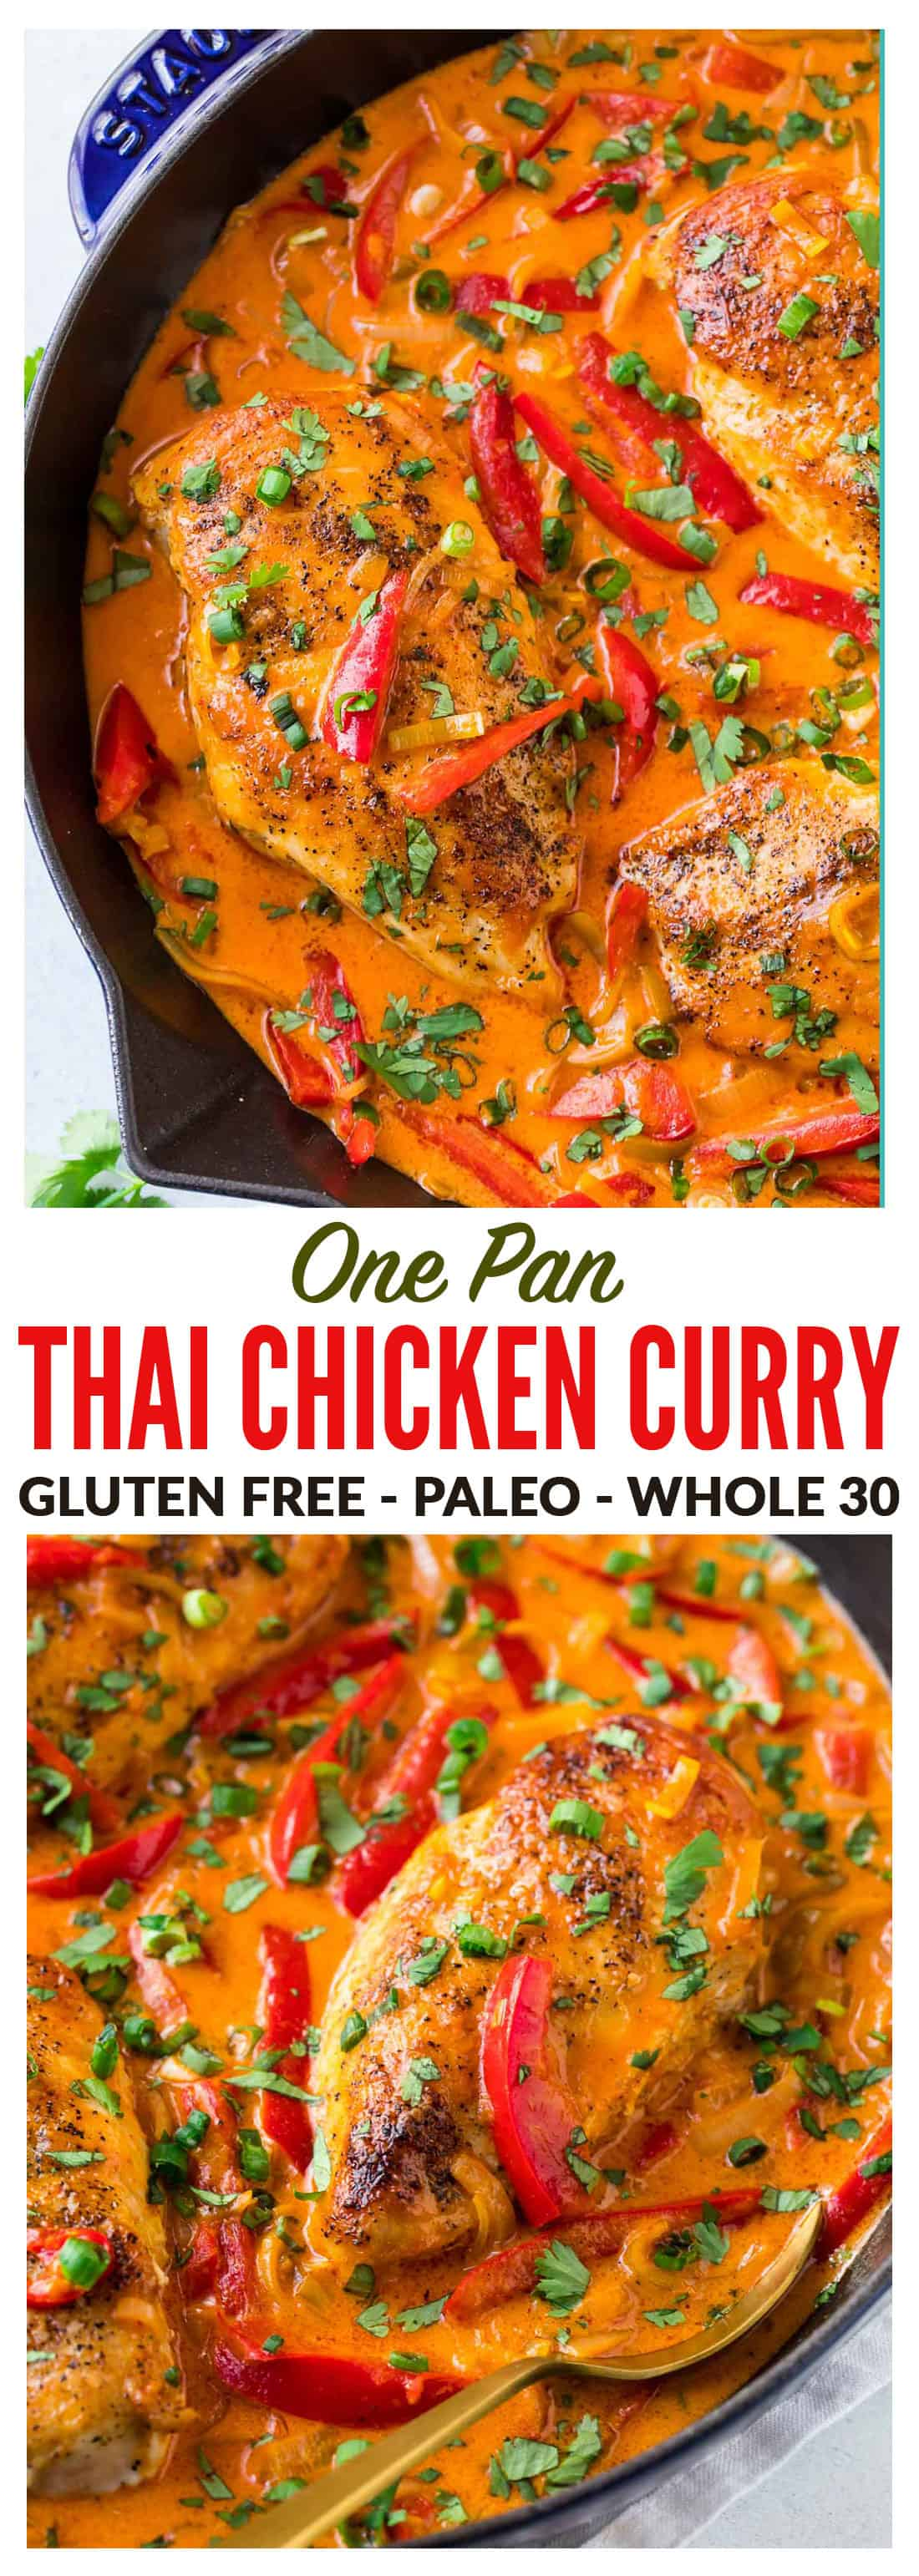 Easy ONE PAN Thai Chicken Curry with Coconut Milk recipe. Filled with authentic red Thai curry flavor, not too spicy, and the coconut milk sauce is to die for! Serve with rice for a fast, healthy weeknight dinner. #thaichickencurry #healthy #easy #whole30